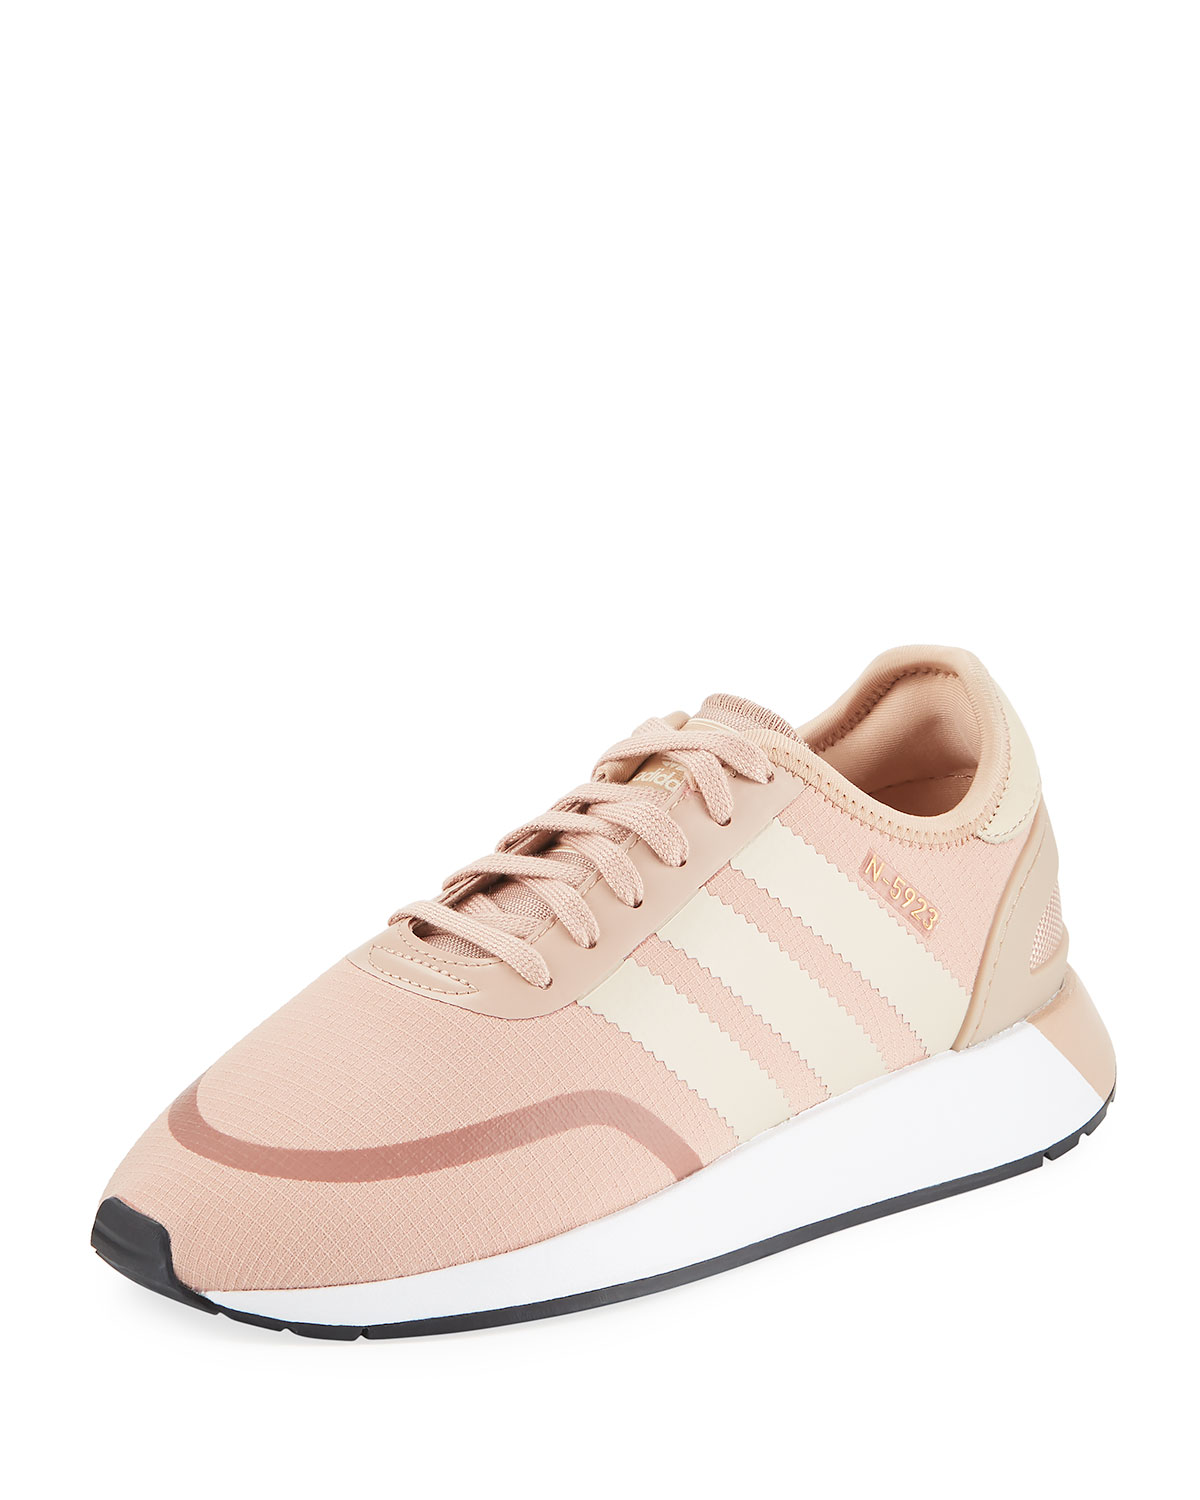 a4f21db2781 Adidas Originals N-5923 Runner Sneakers In Pink - Pink In Ash Peach Linen